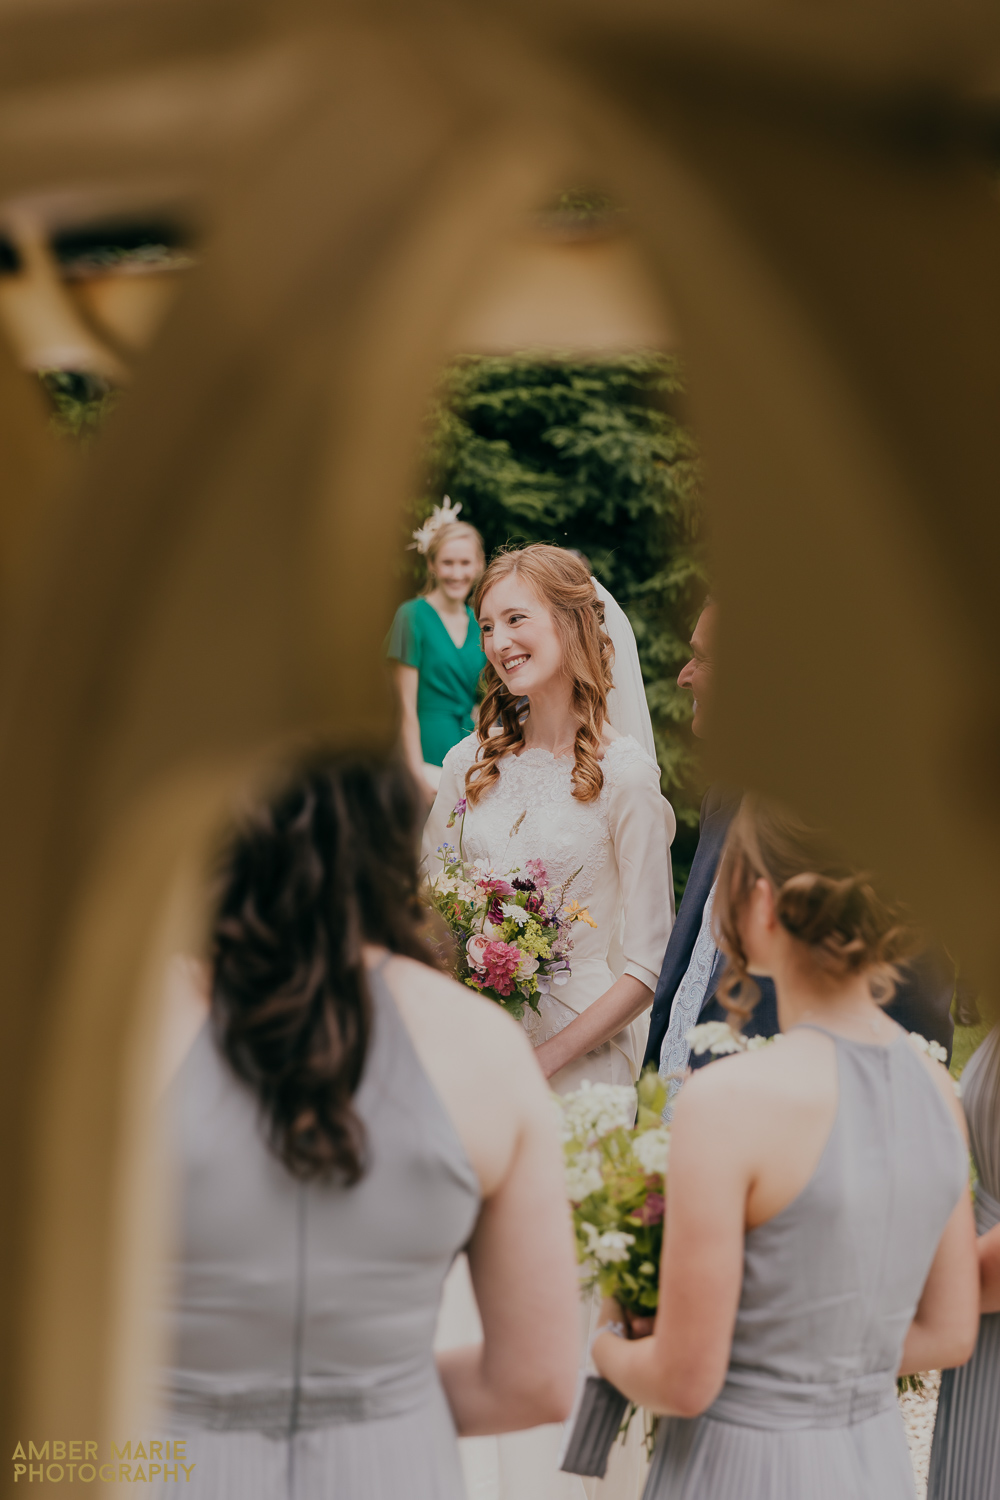 Candid wedding photography of bride chatting to guests